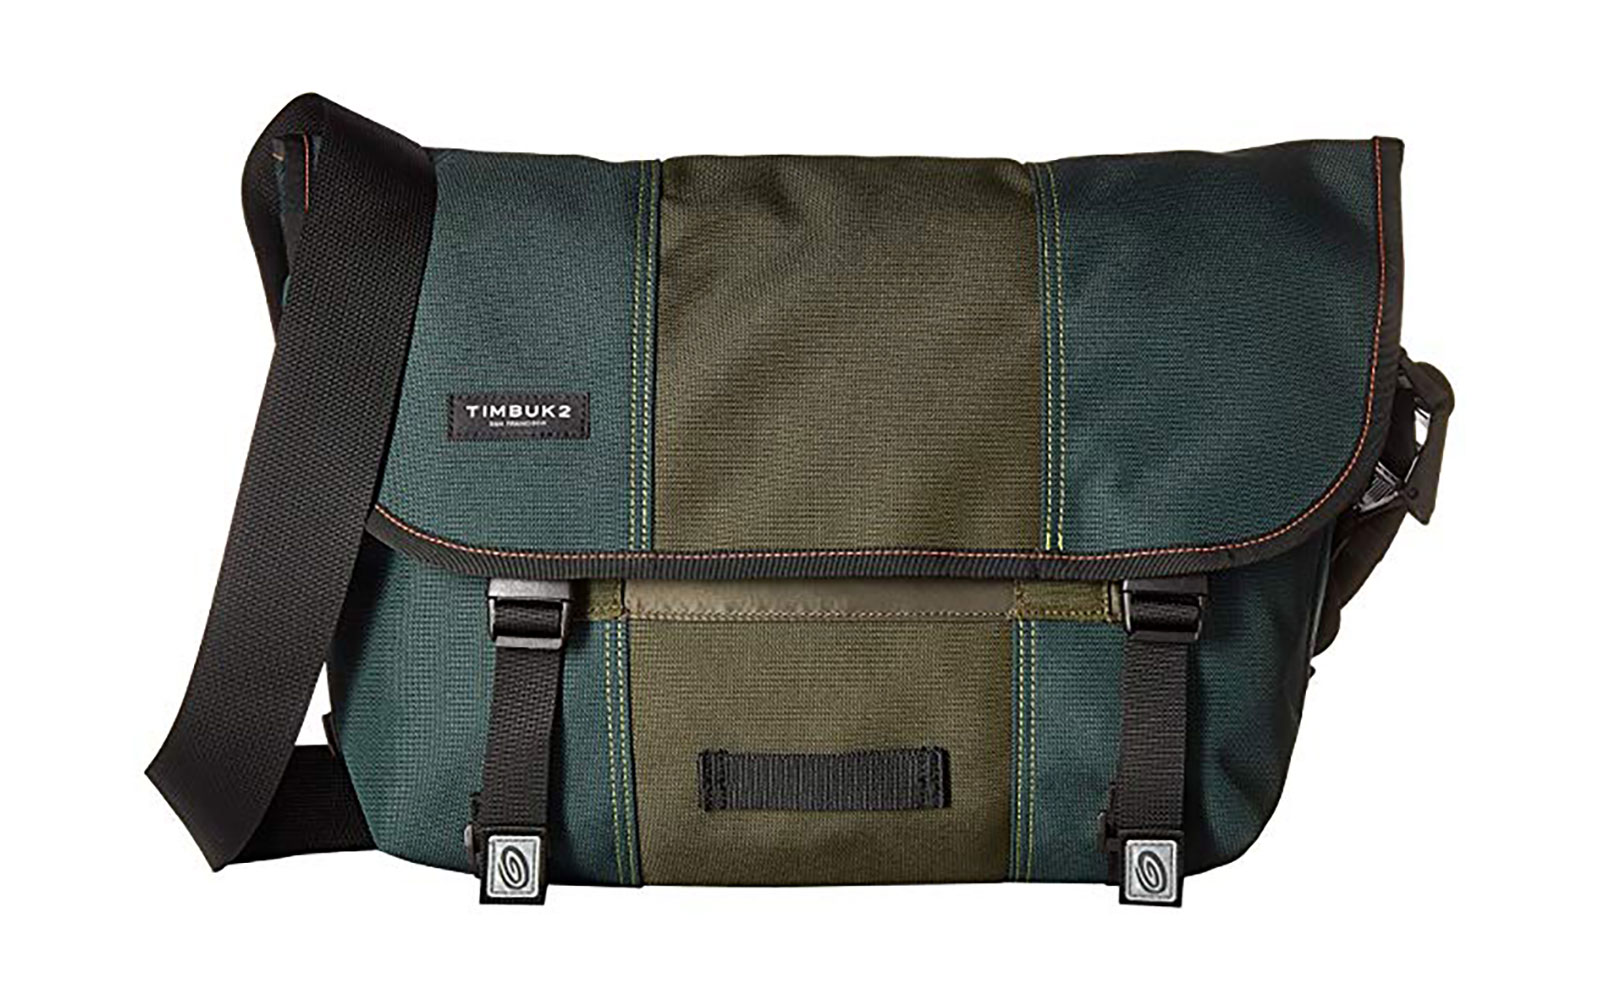 968e6ae94 Most Comfortable Option: Timbuk2 Classic Messenger Bag